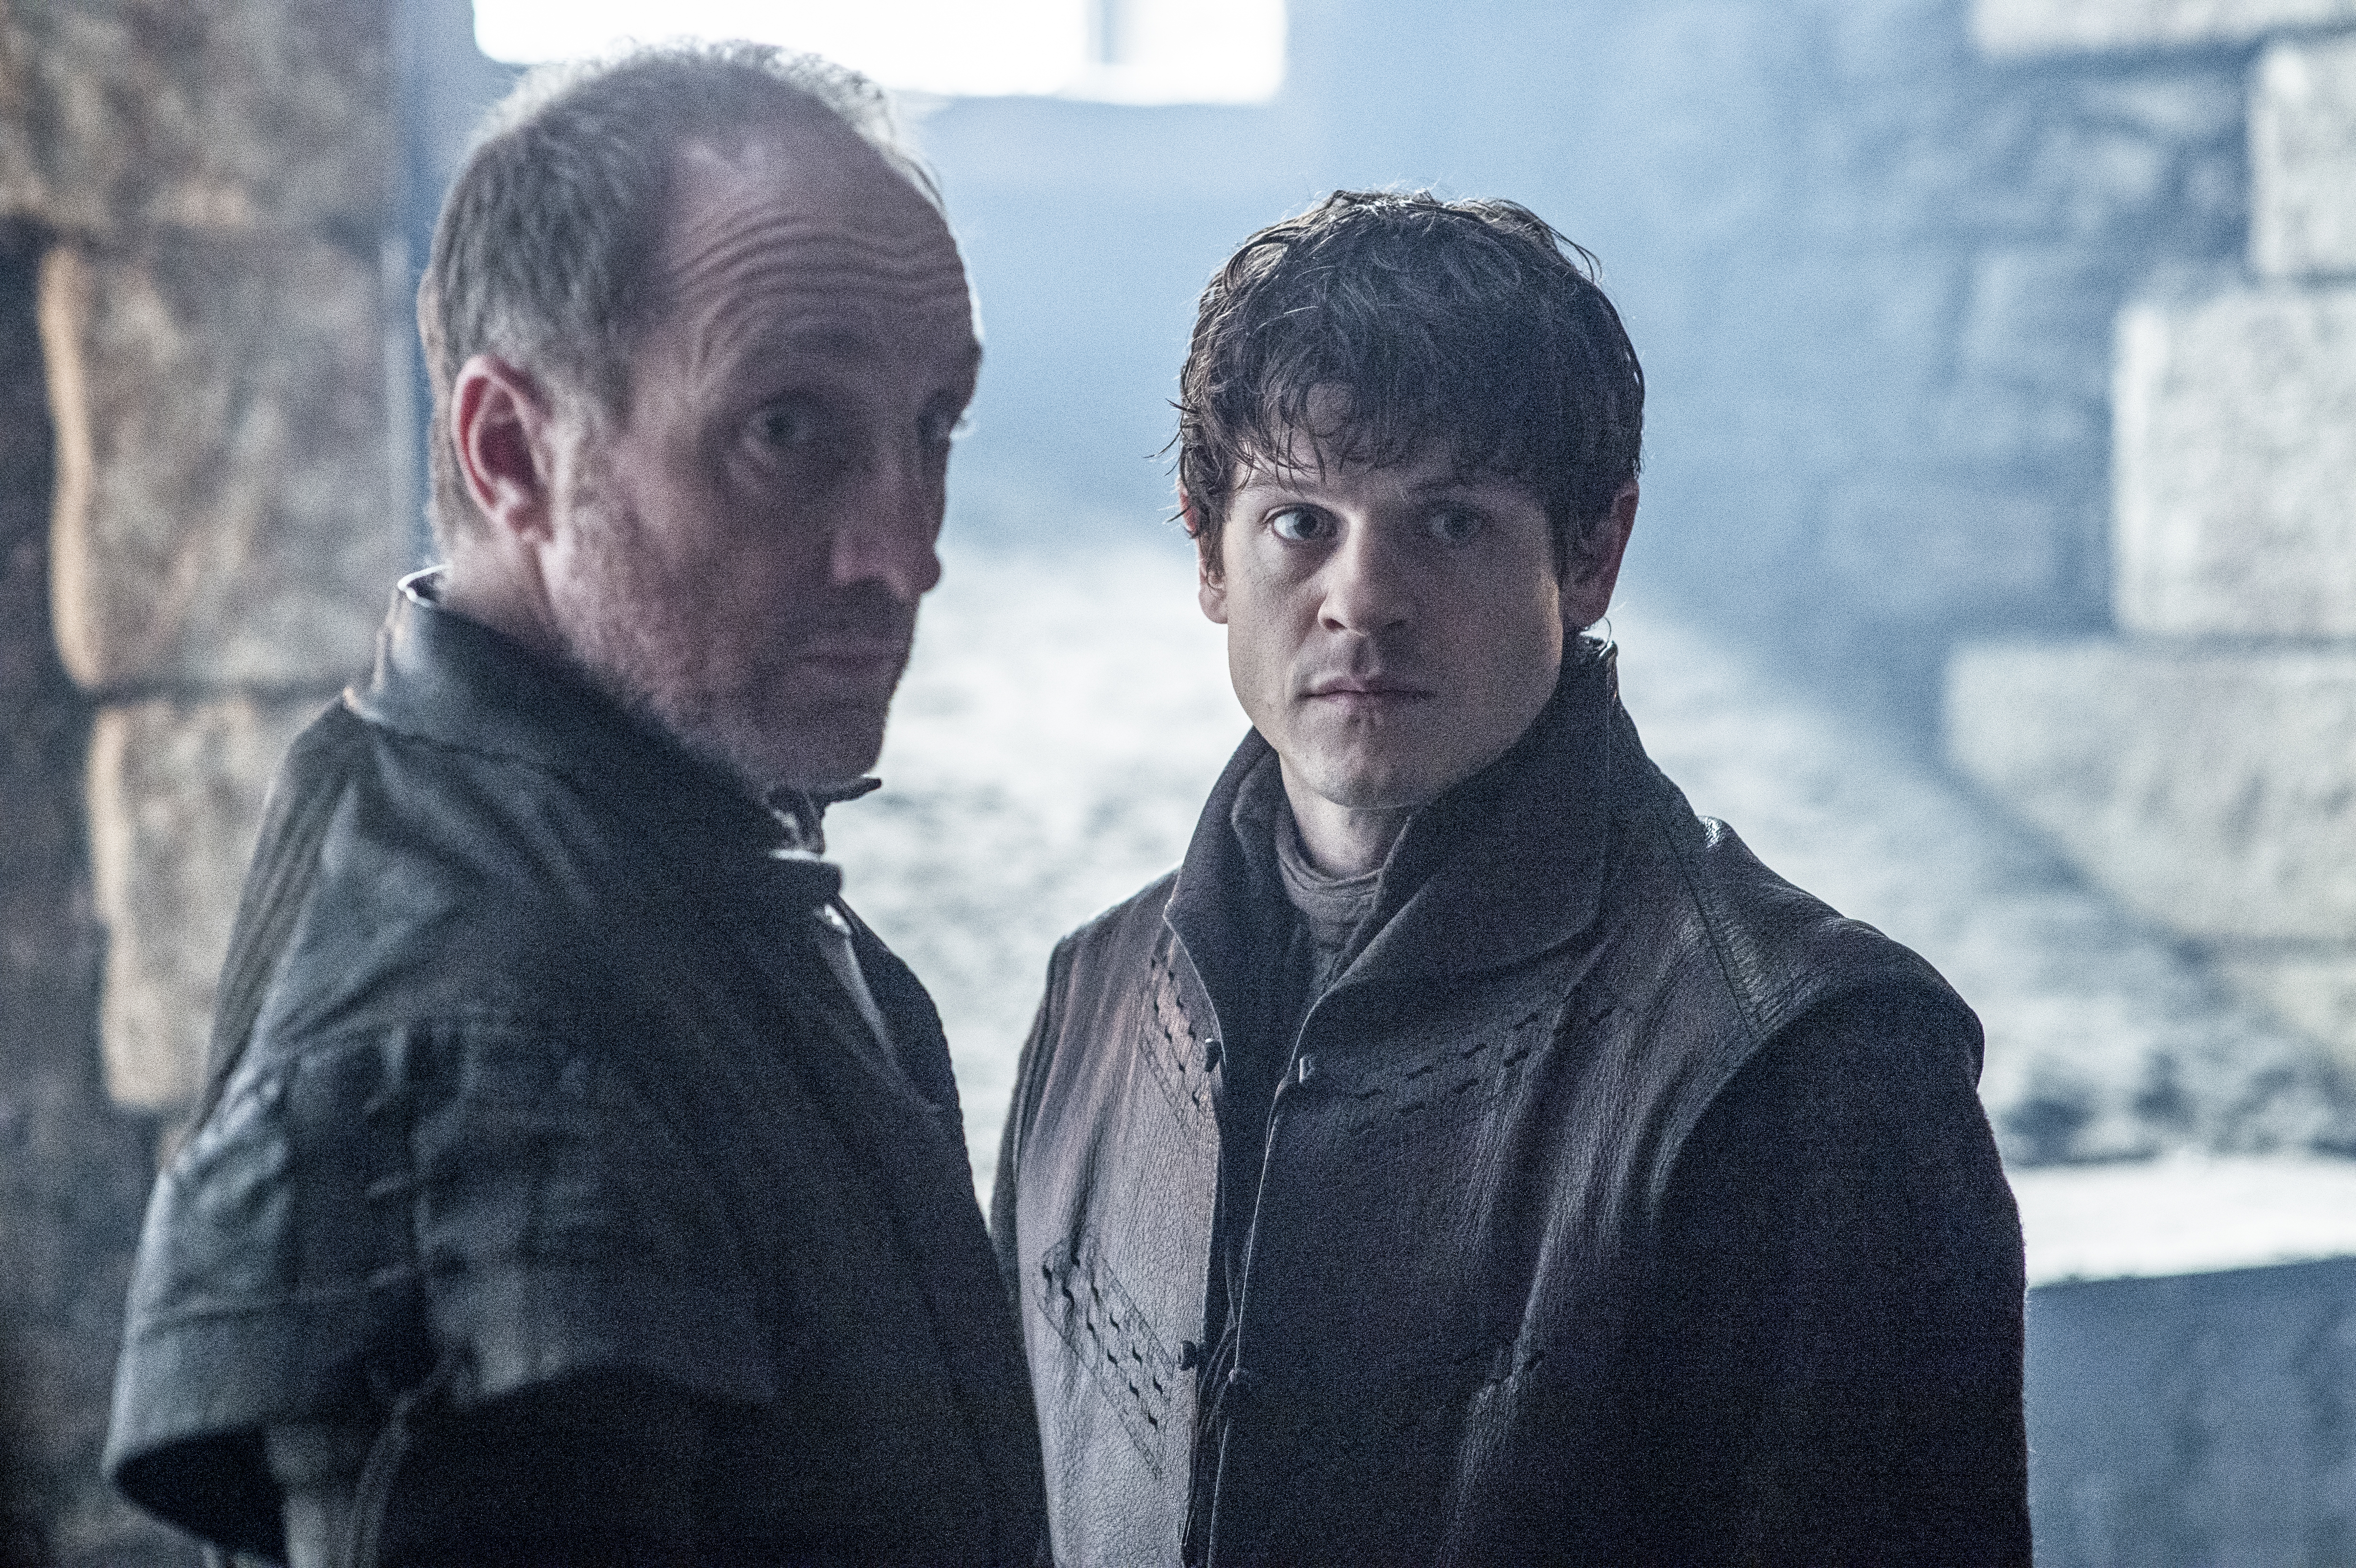 Michael McElhatton as Roose Bolton and Iwan Rheon as Ramsay Bolton. Photo by Helen Sloan/HBO